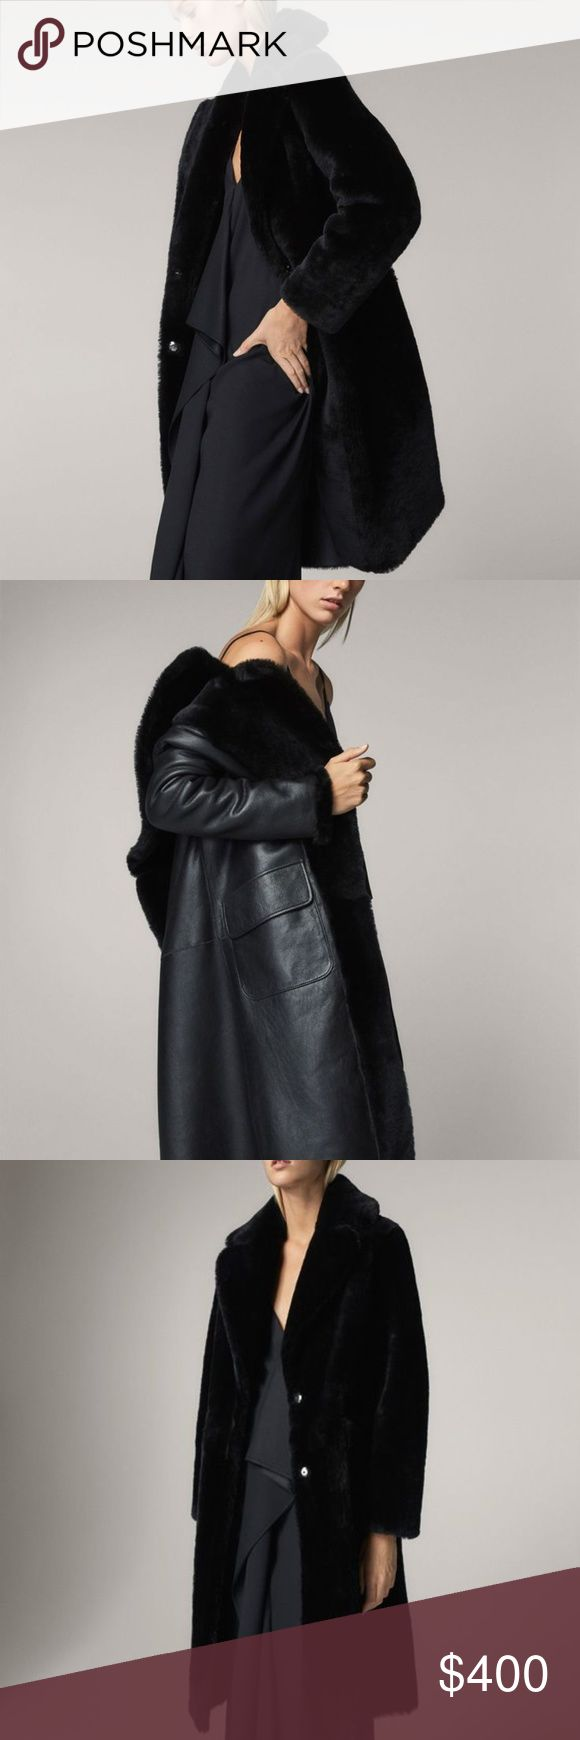 NEW Massimo Dutti REVERSIBLE MOUTON FUR COAT S Reversible, mouton coat, made from Spanish sheepskin leather. The main model features a straight fit, notched lapels, concealed fastening with two snap buttons, two side pockets and long sleeves. The contrasting model features a straight fit, notched lapels, concealed fastening with two snap buttons, two side patch pockets with flaps and long sleeves.  Brand New. Massimo Dutti Jackets & Coats